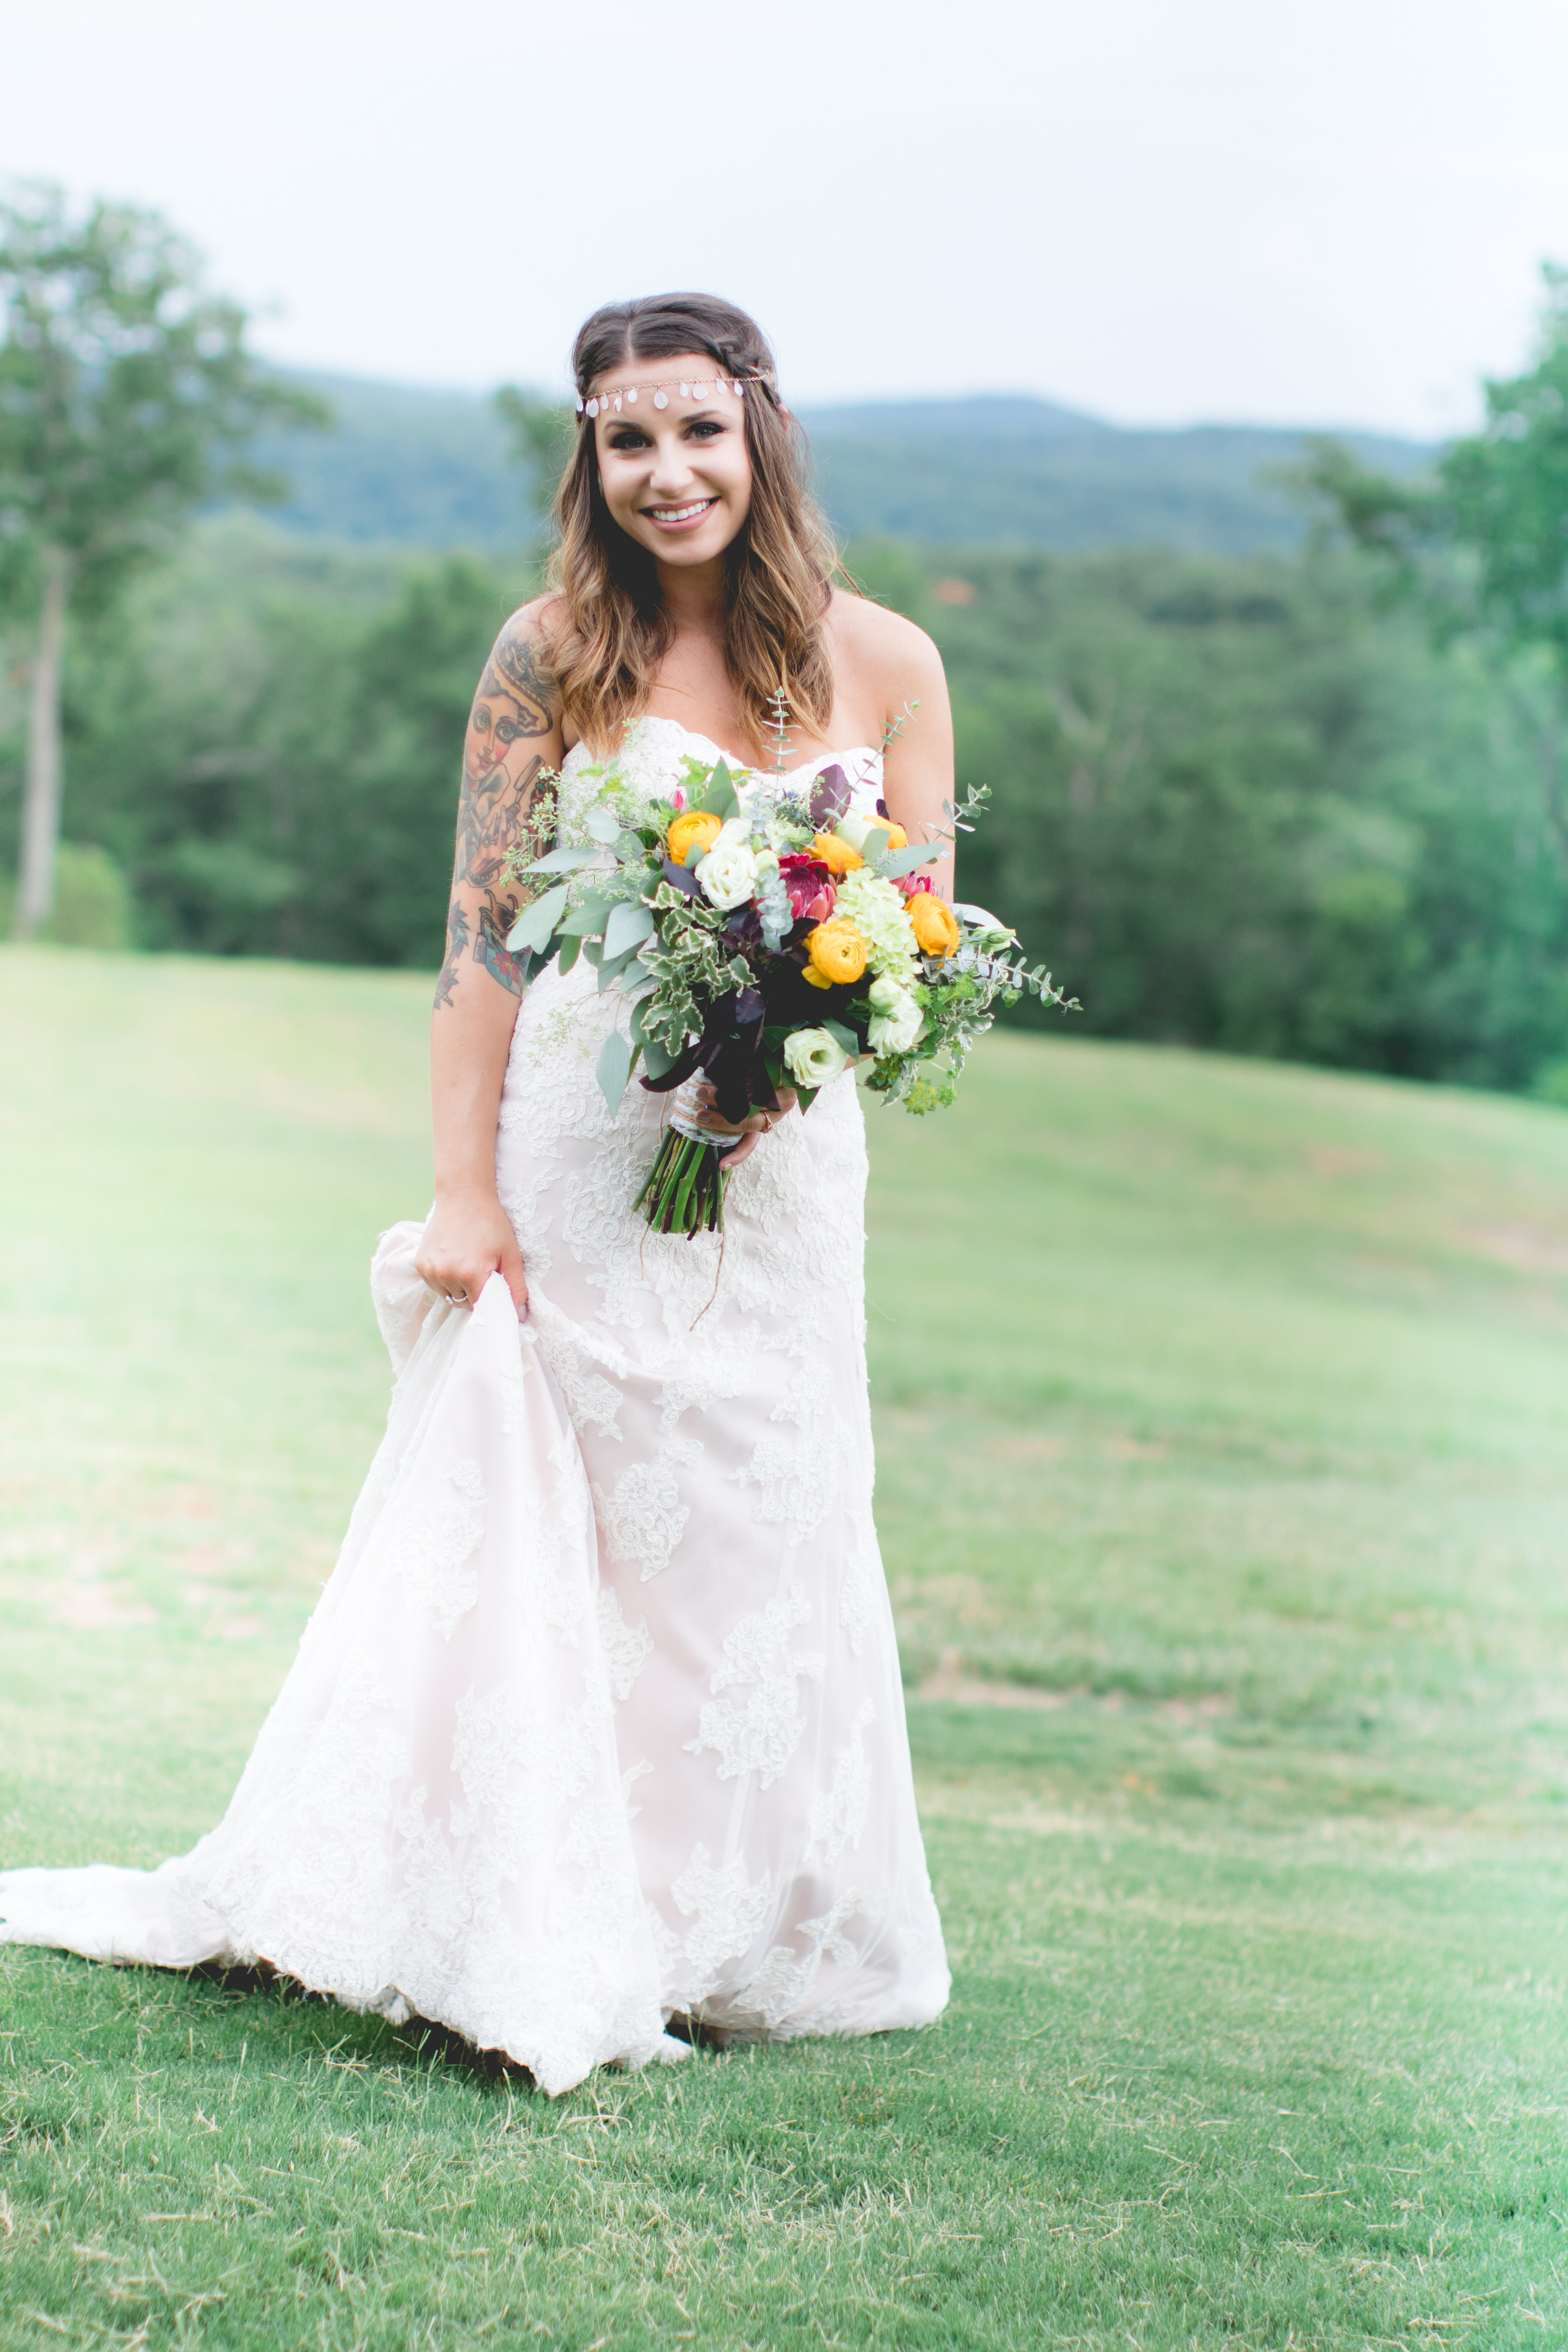 Dream Wedding Dress, The Barn at Tatum Acres, North Georgia Barn Wedding Venue, Georgia Wedding, Wedding Budget, Carrie's Bridal Collection